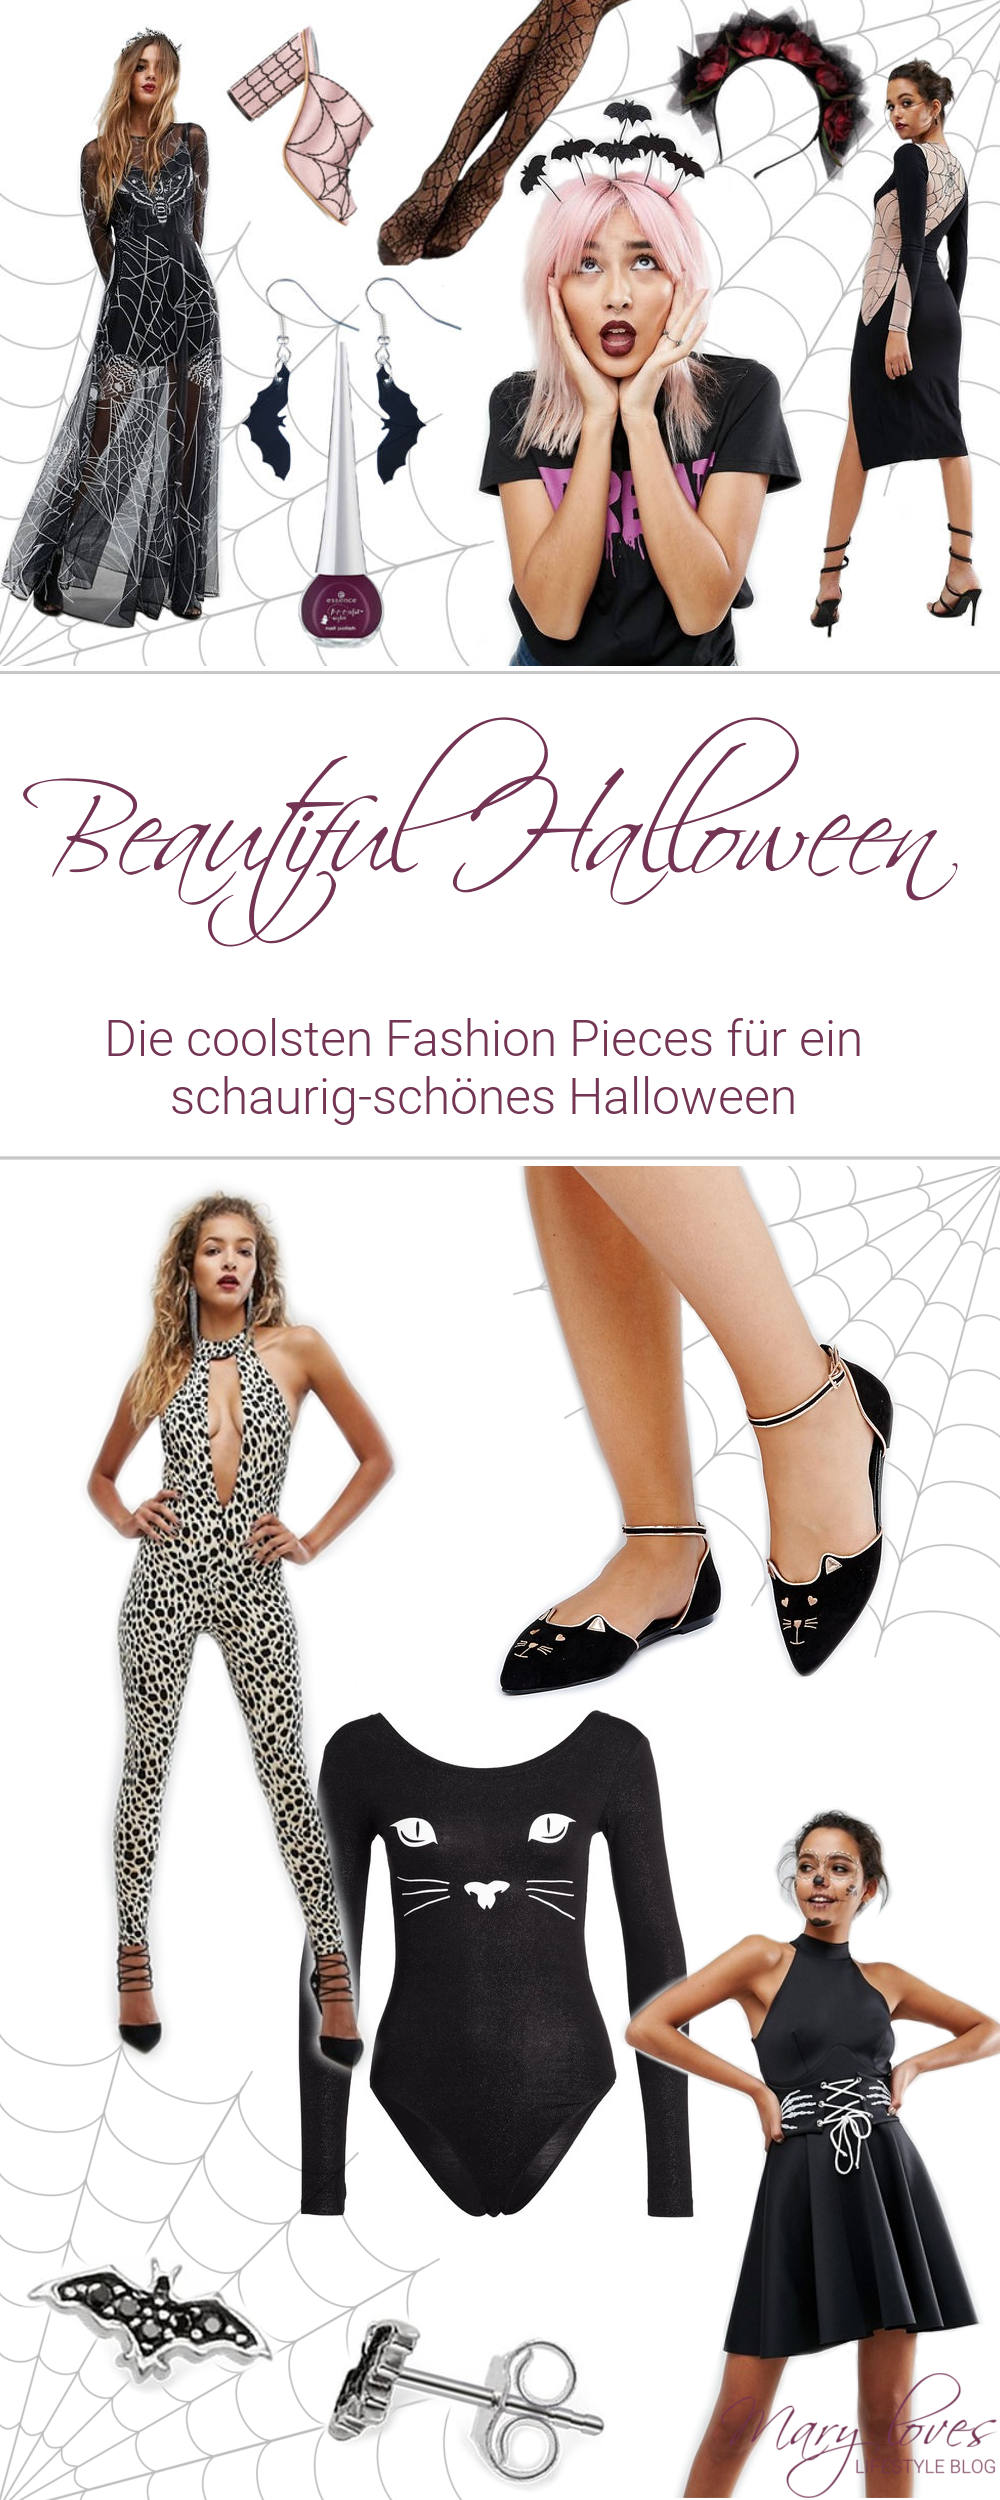 [Editor's Picks] Beautiful Halloween - Die coolsten Fashion Pieces für ein schaurig-schönes Halloween - #halloween #halloweenfashion #beautifulhalloween